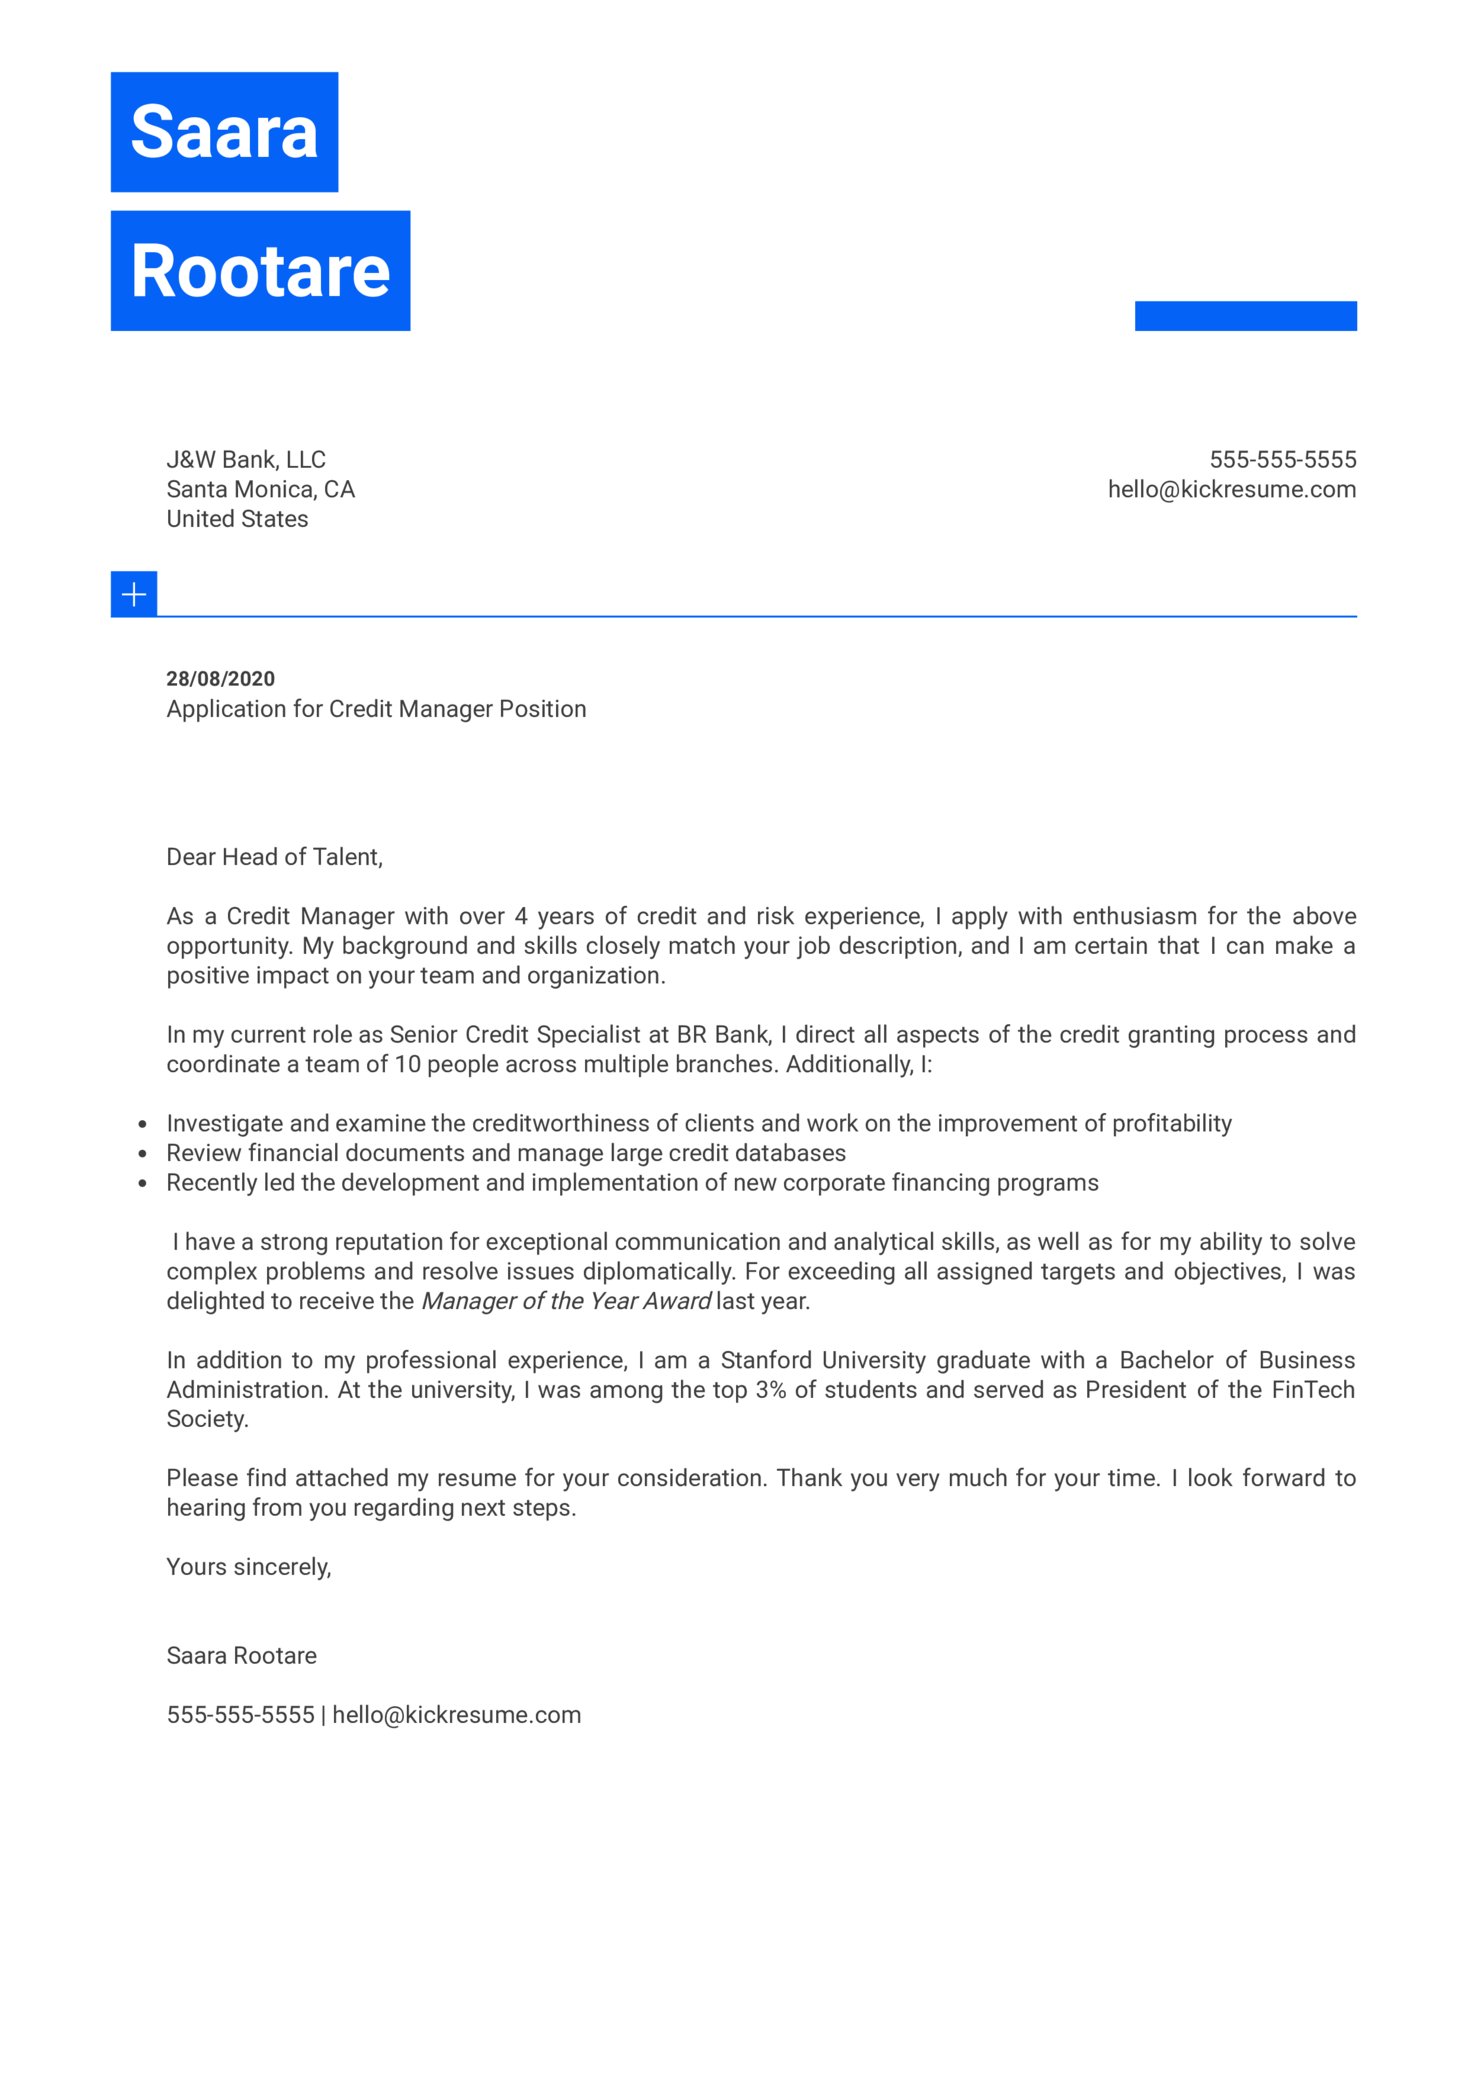 Credit Manager Cover Letter Example